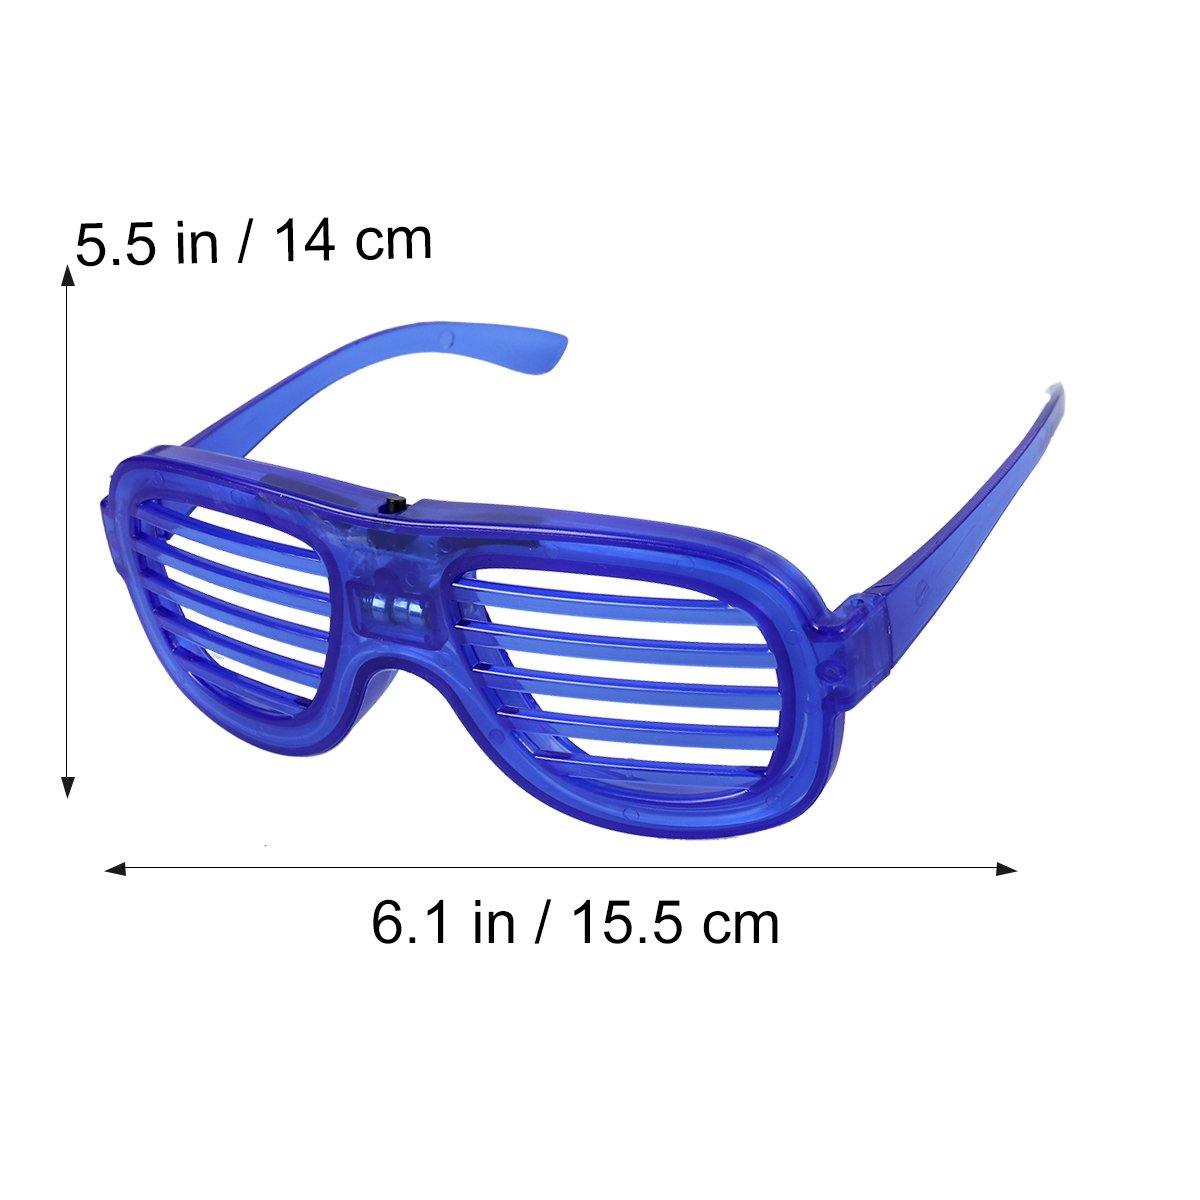 3e04dbd49f0 Buy OULII Fashion Eyewear Neon Slotted Shutter LED Glow Sunglasses Shades  Light up Glasses for Kids Adults Costume Party Favors (Blue) Online at Low  Prices ...